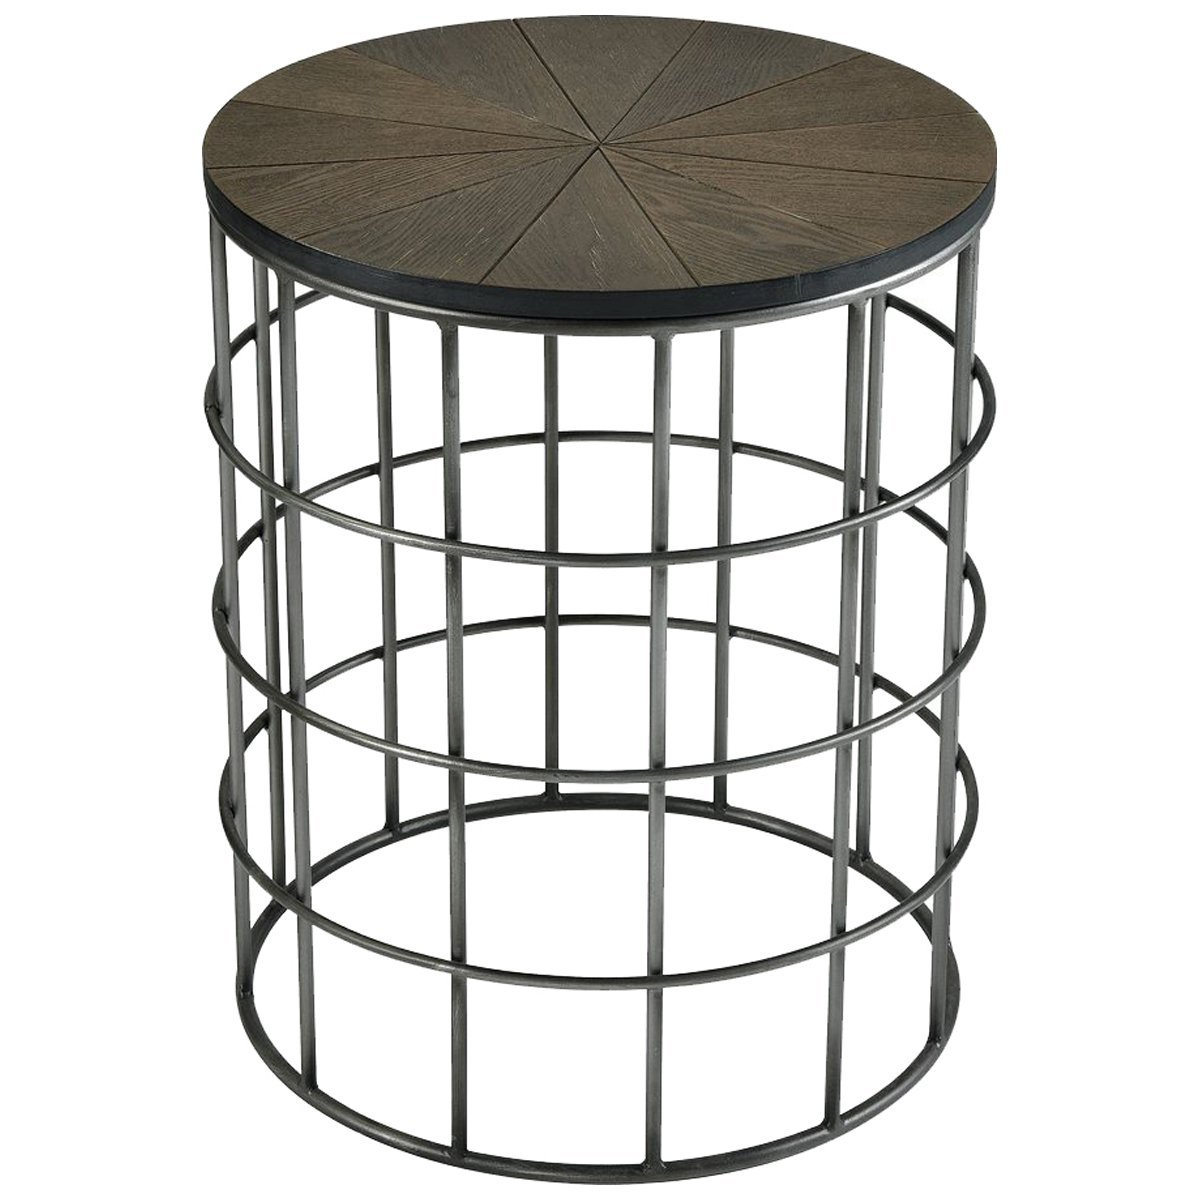 accent tables warwick hazelnut wood metal furniture table side console kitchen monarch very narrow ballard entryway with storage glass collapsible end mosaic garden piece coffee